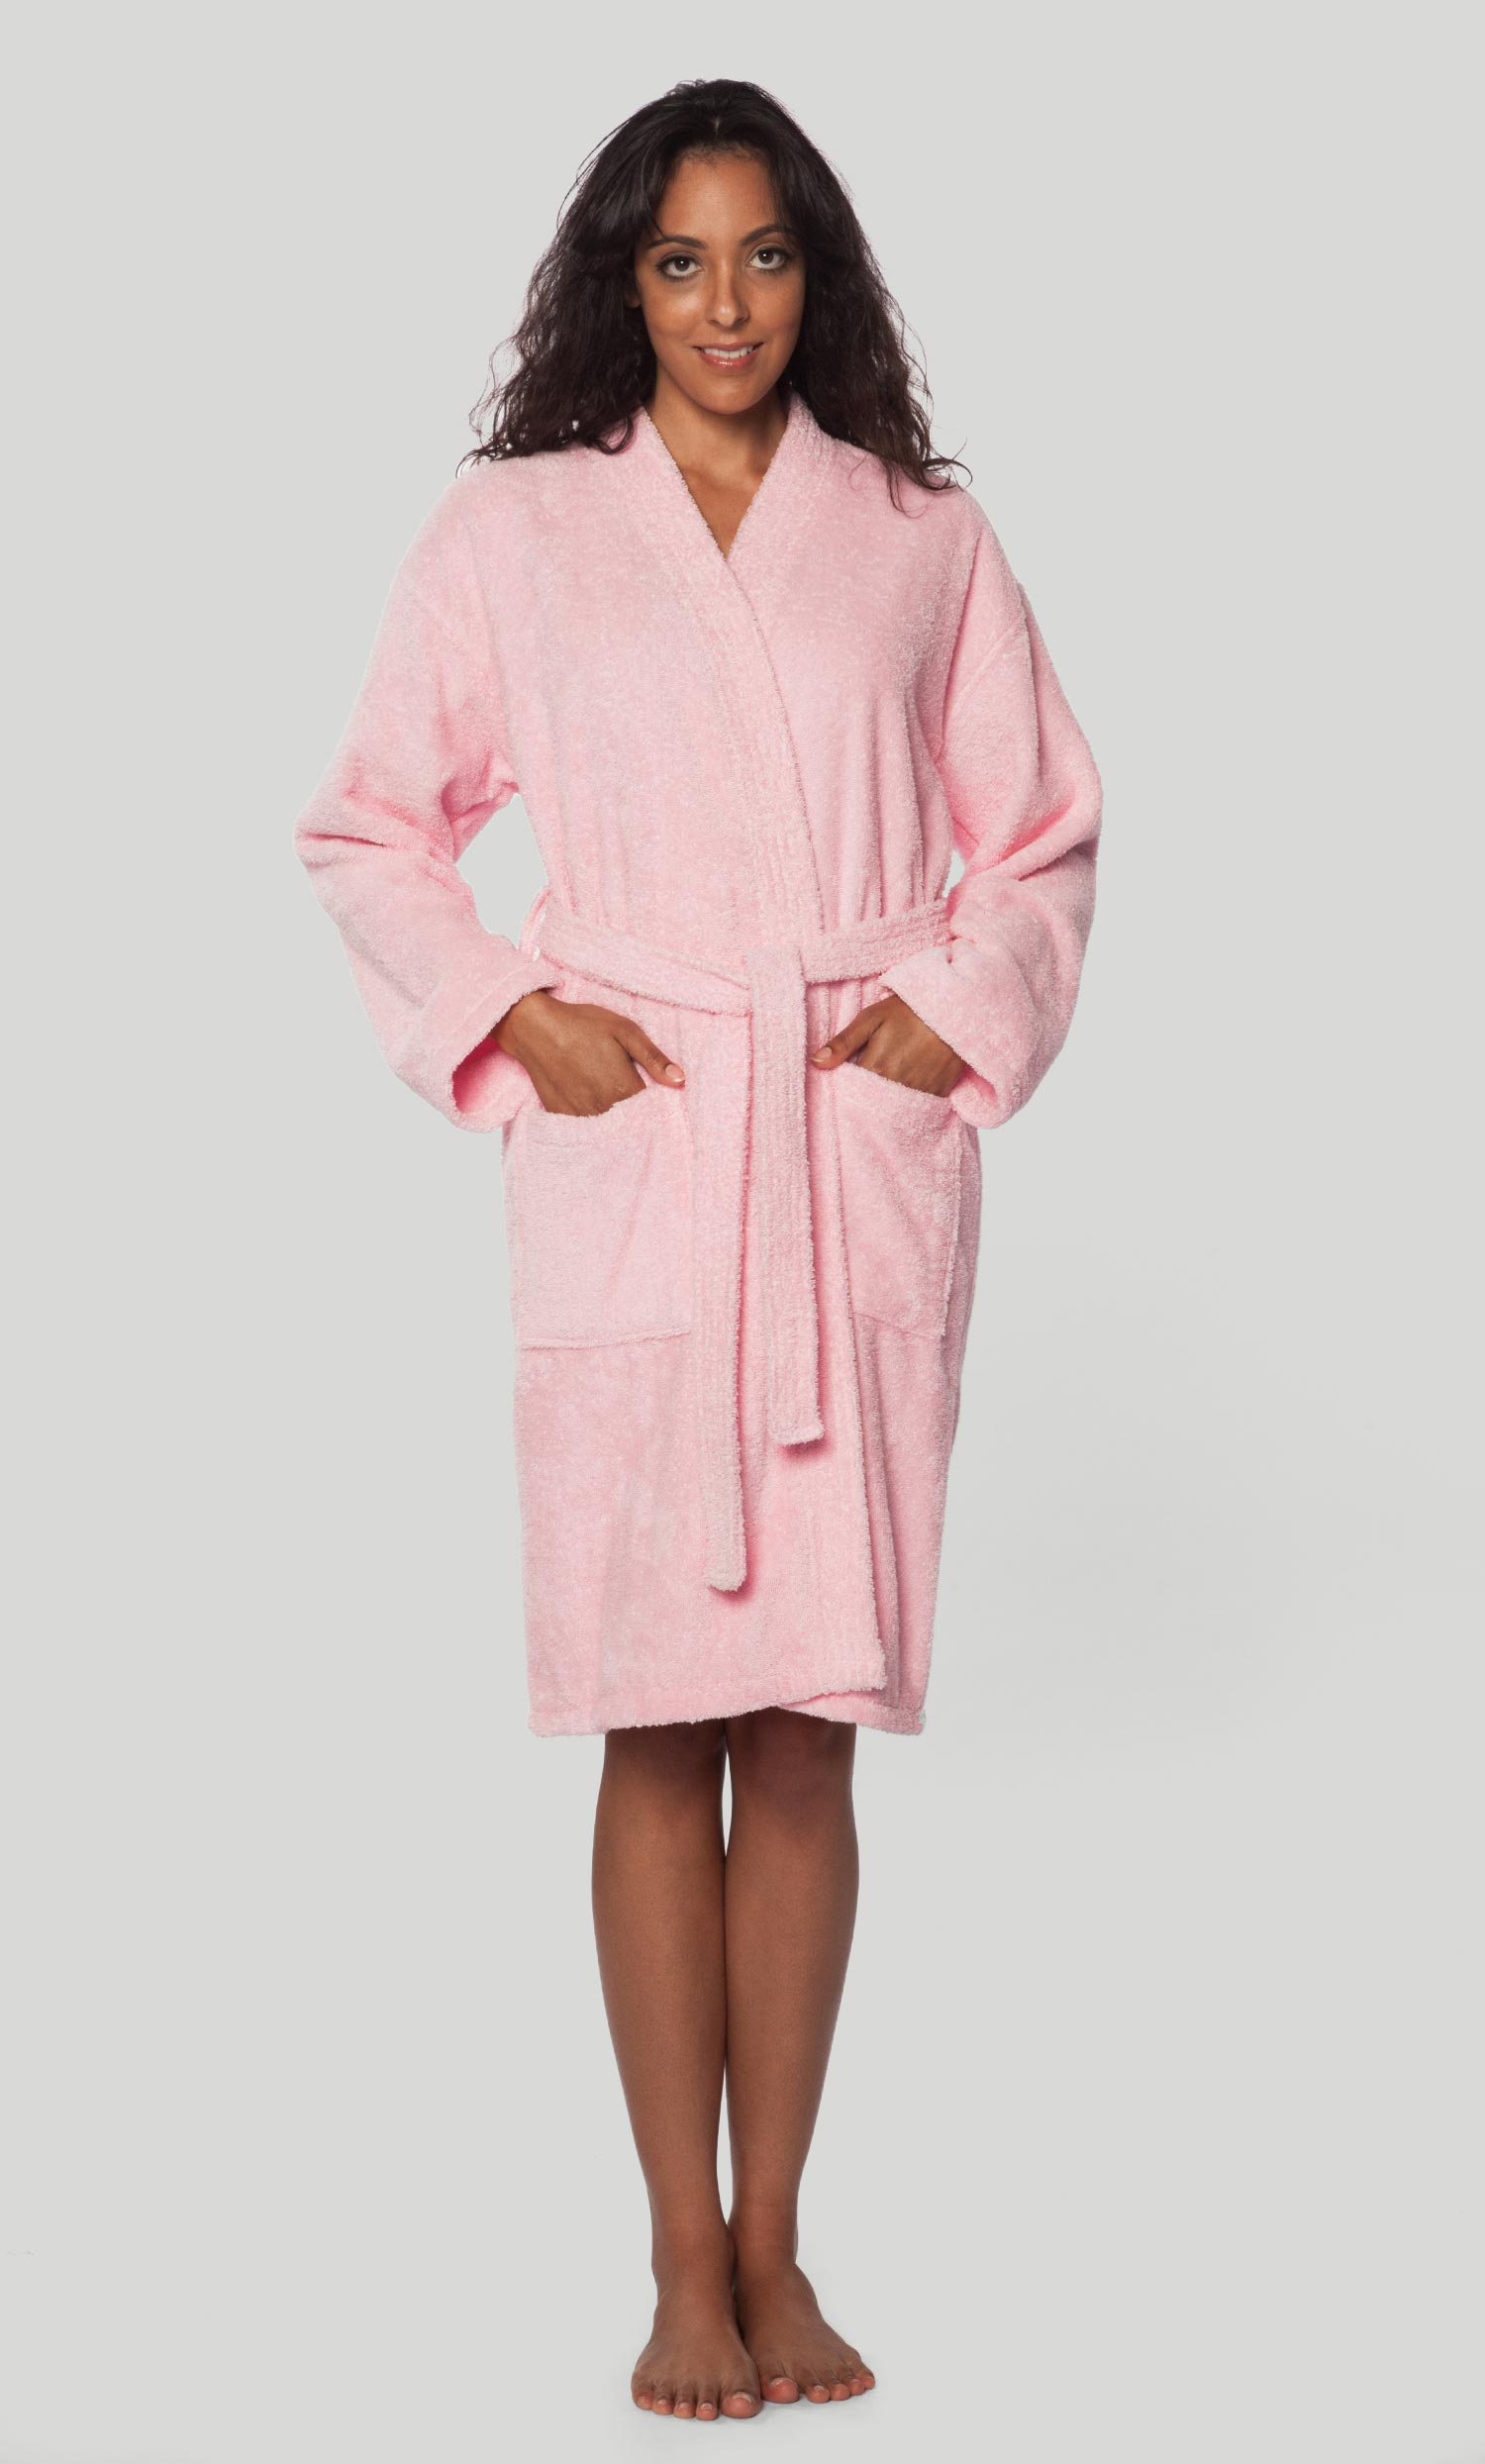 179b319b42 Economy Bathrobes    Terry Kimono Bathrobes    100% Turkish Cotton Pink  Terry Kimono Bathrobe - Wholesale bathrobes